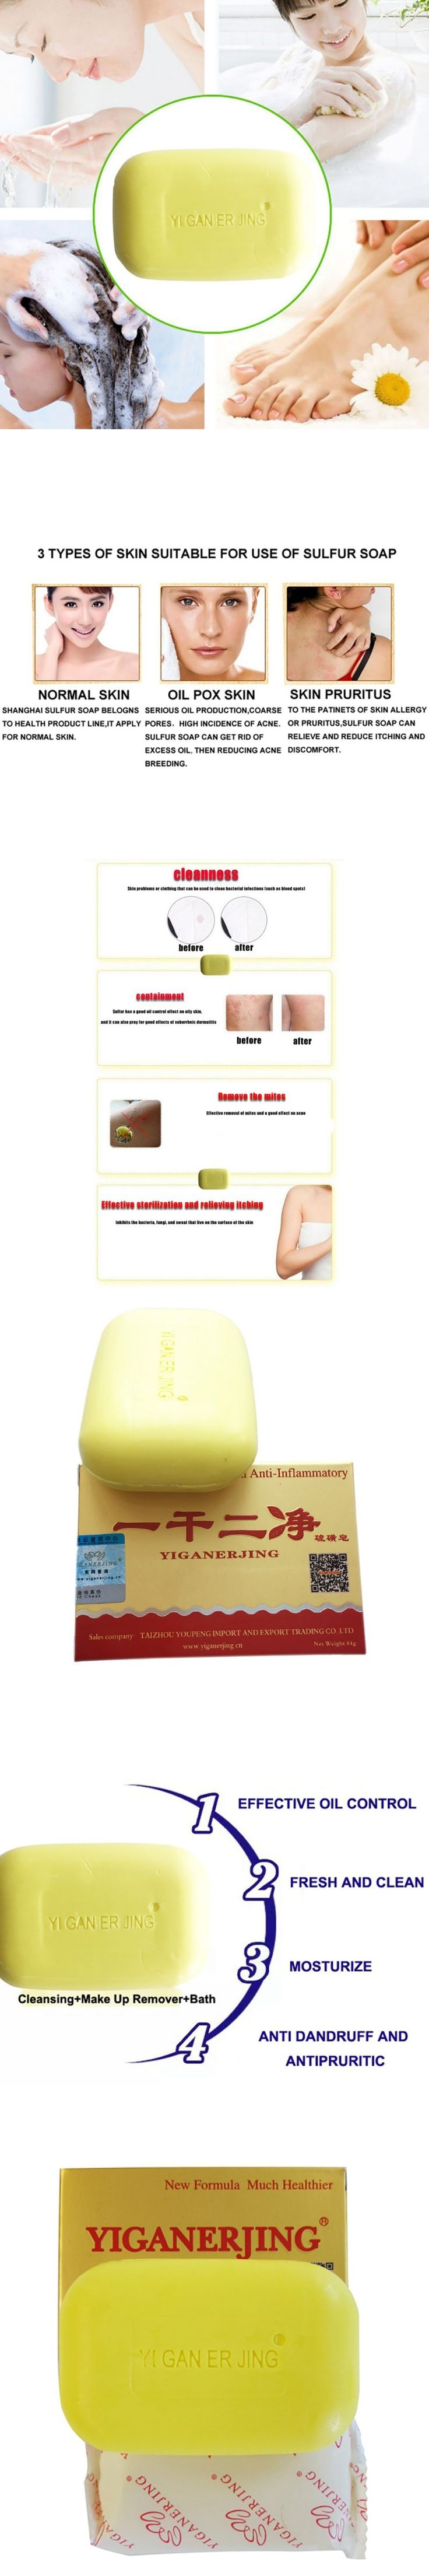 Sulfur Soap Sterilization Itching Practical Skin Care Body Moisturizing Whitening Soap Acne Anti Fungus